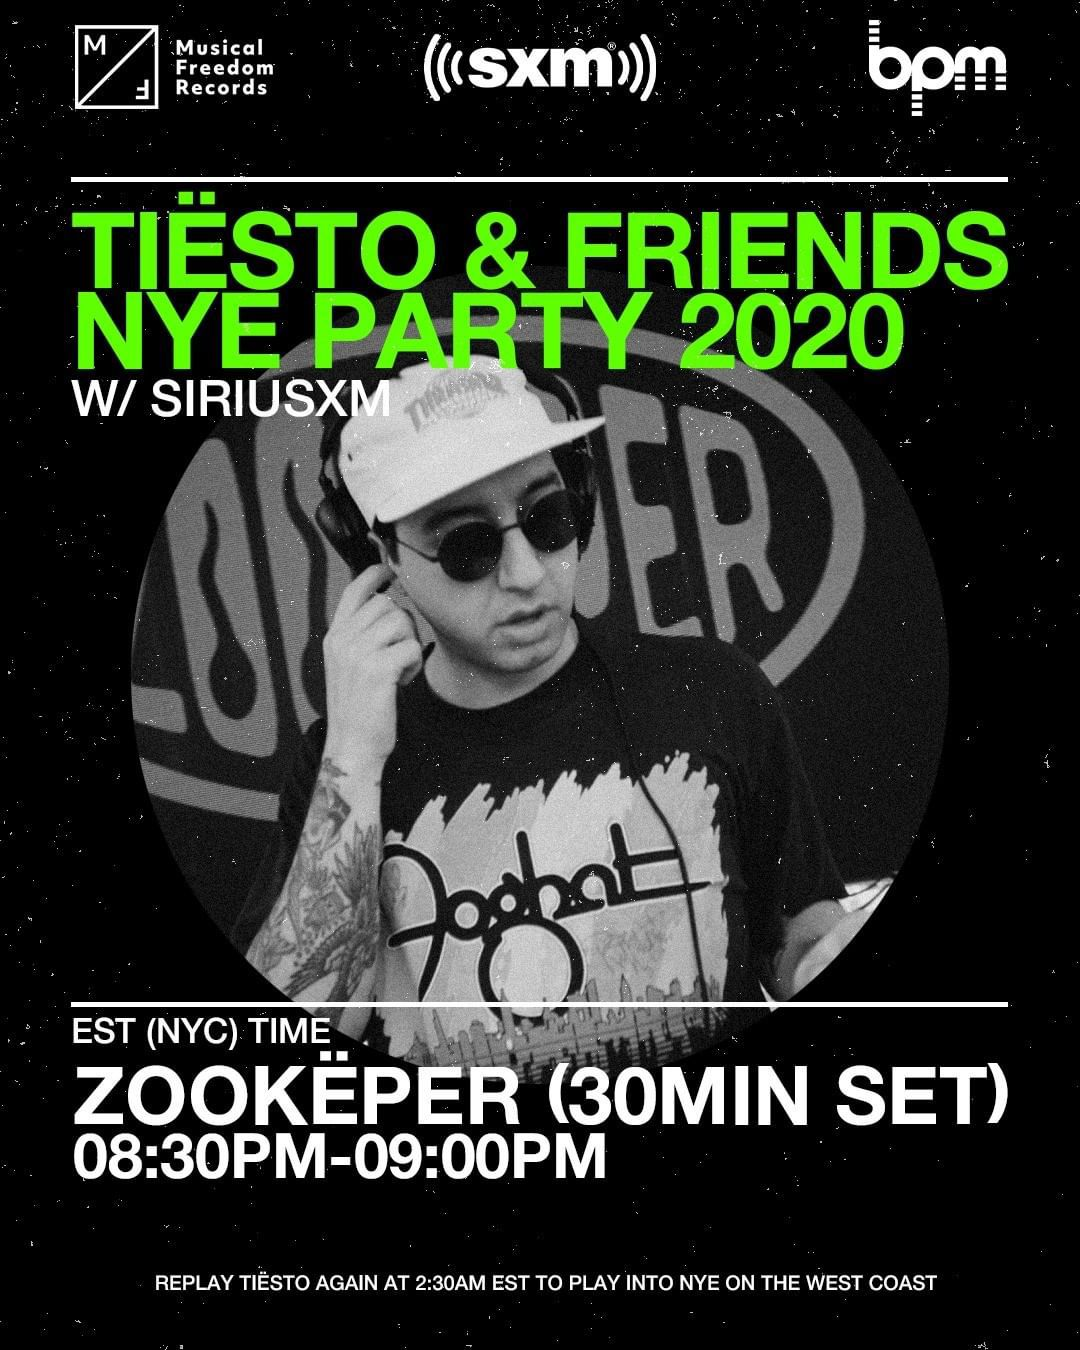 Tiësto and friends, New Year 2020 on Sirius Xm, zookëper